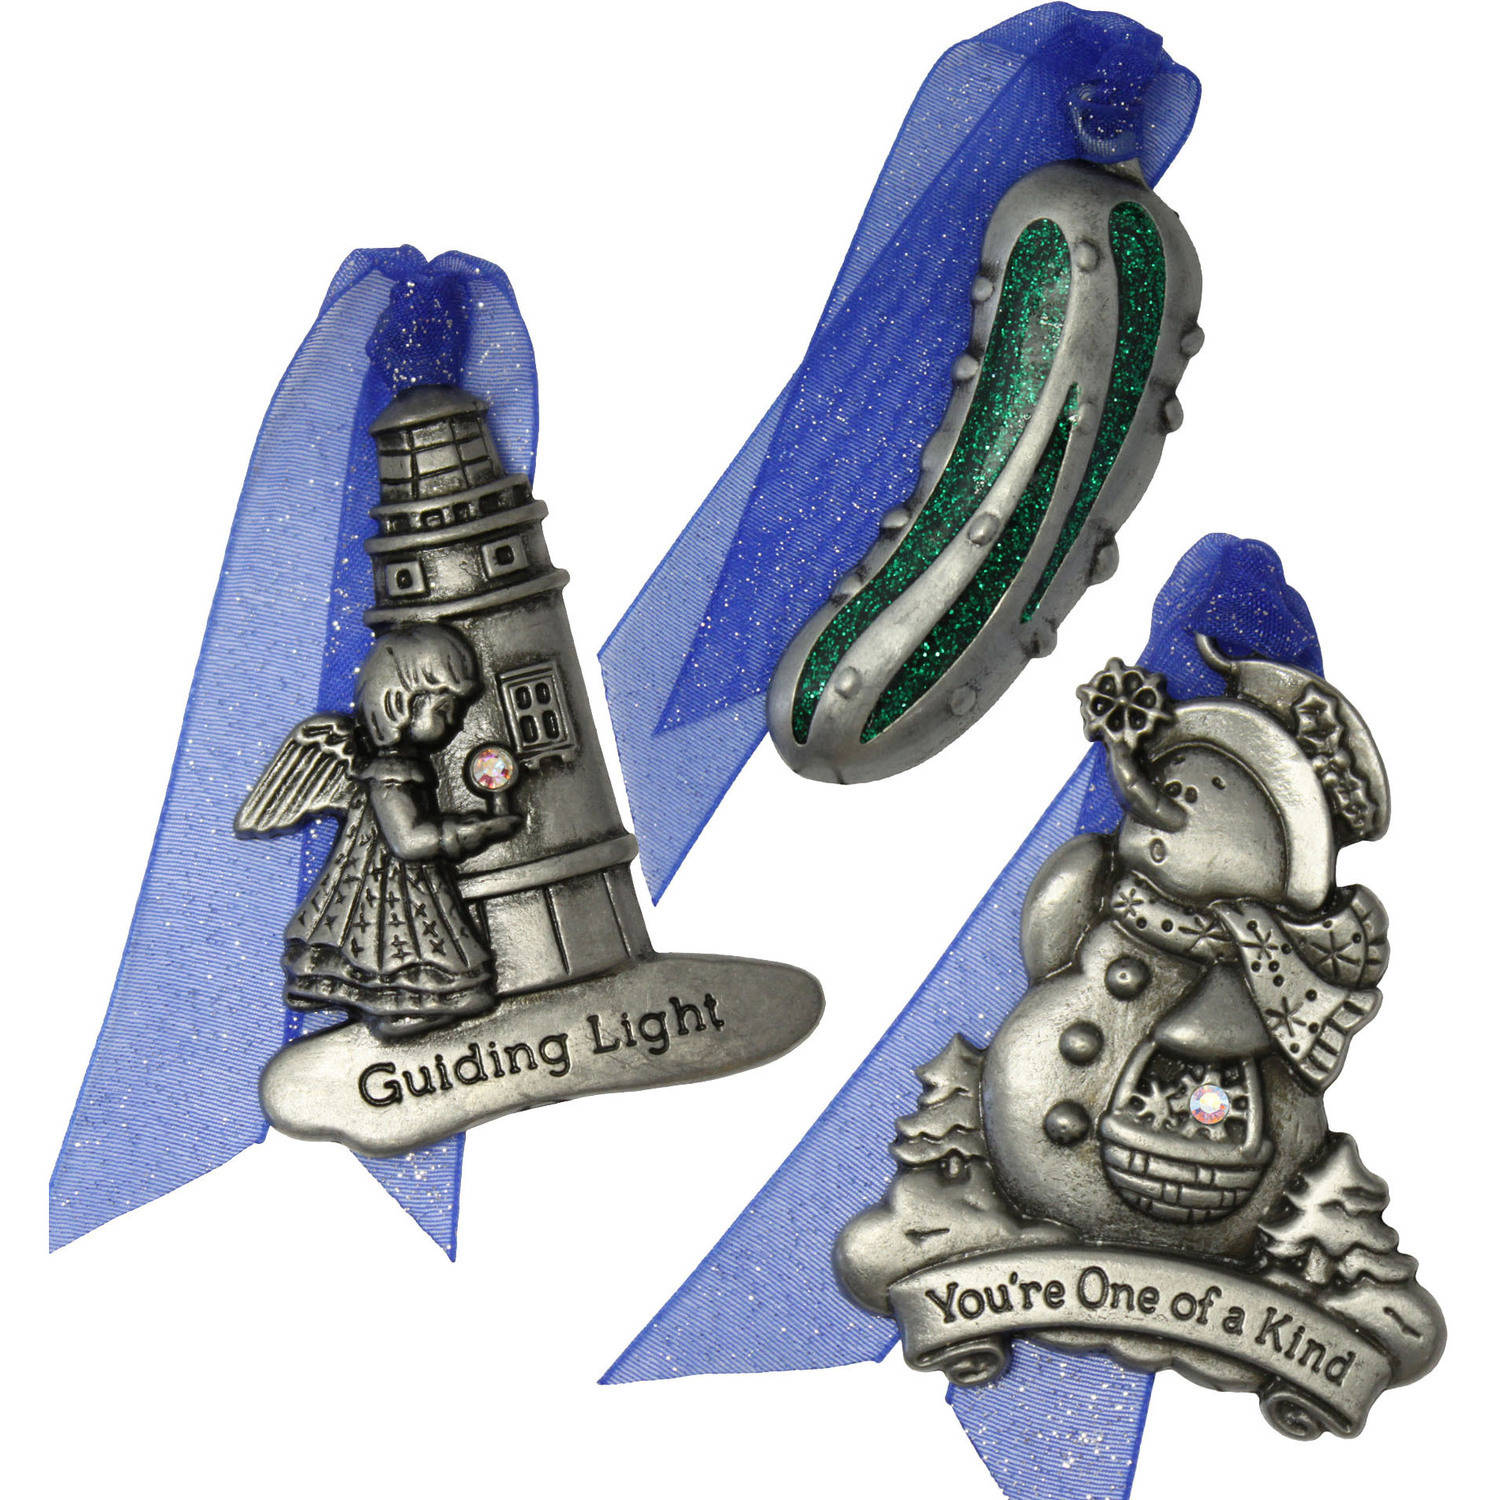 Gloria Duchin Legends of Christmas Ornaments, Set of 6